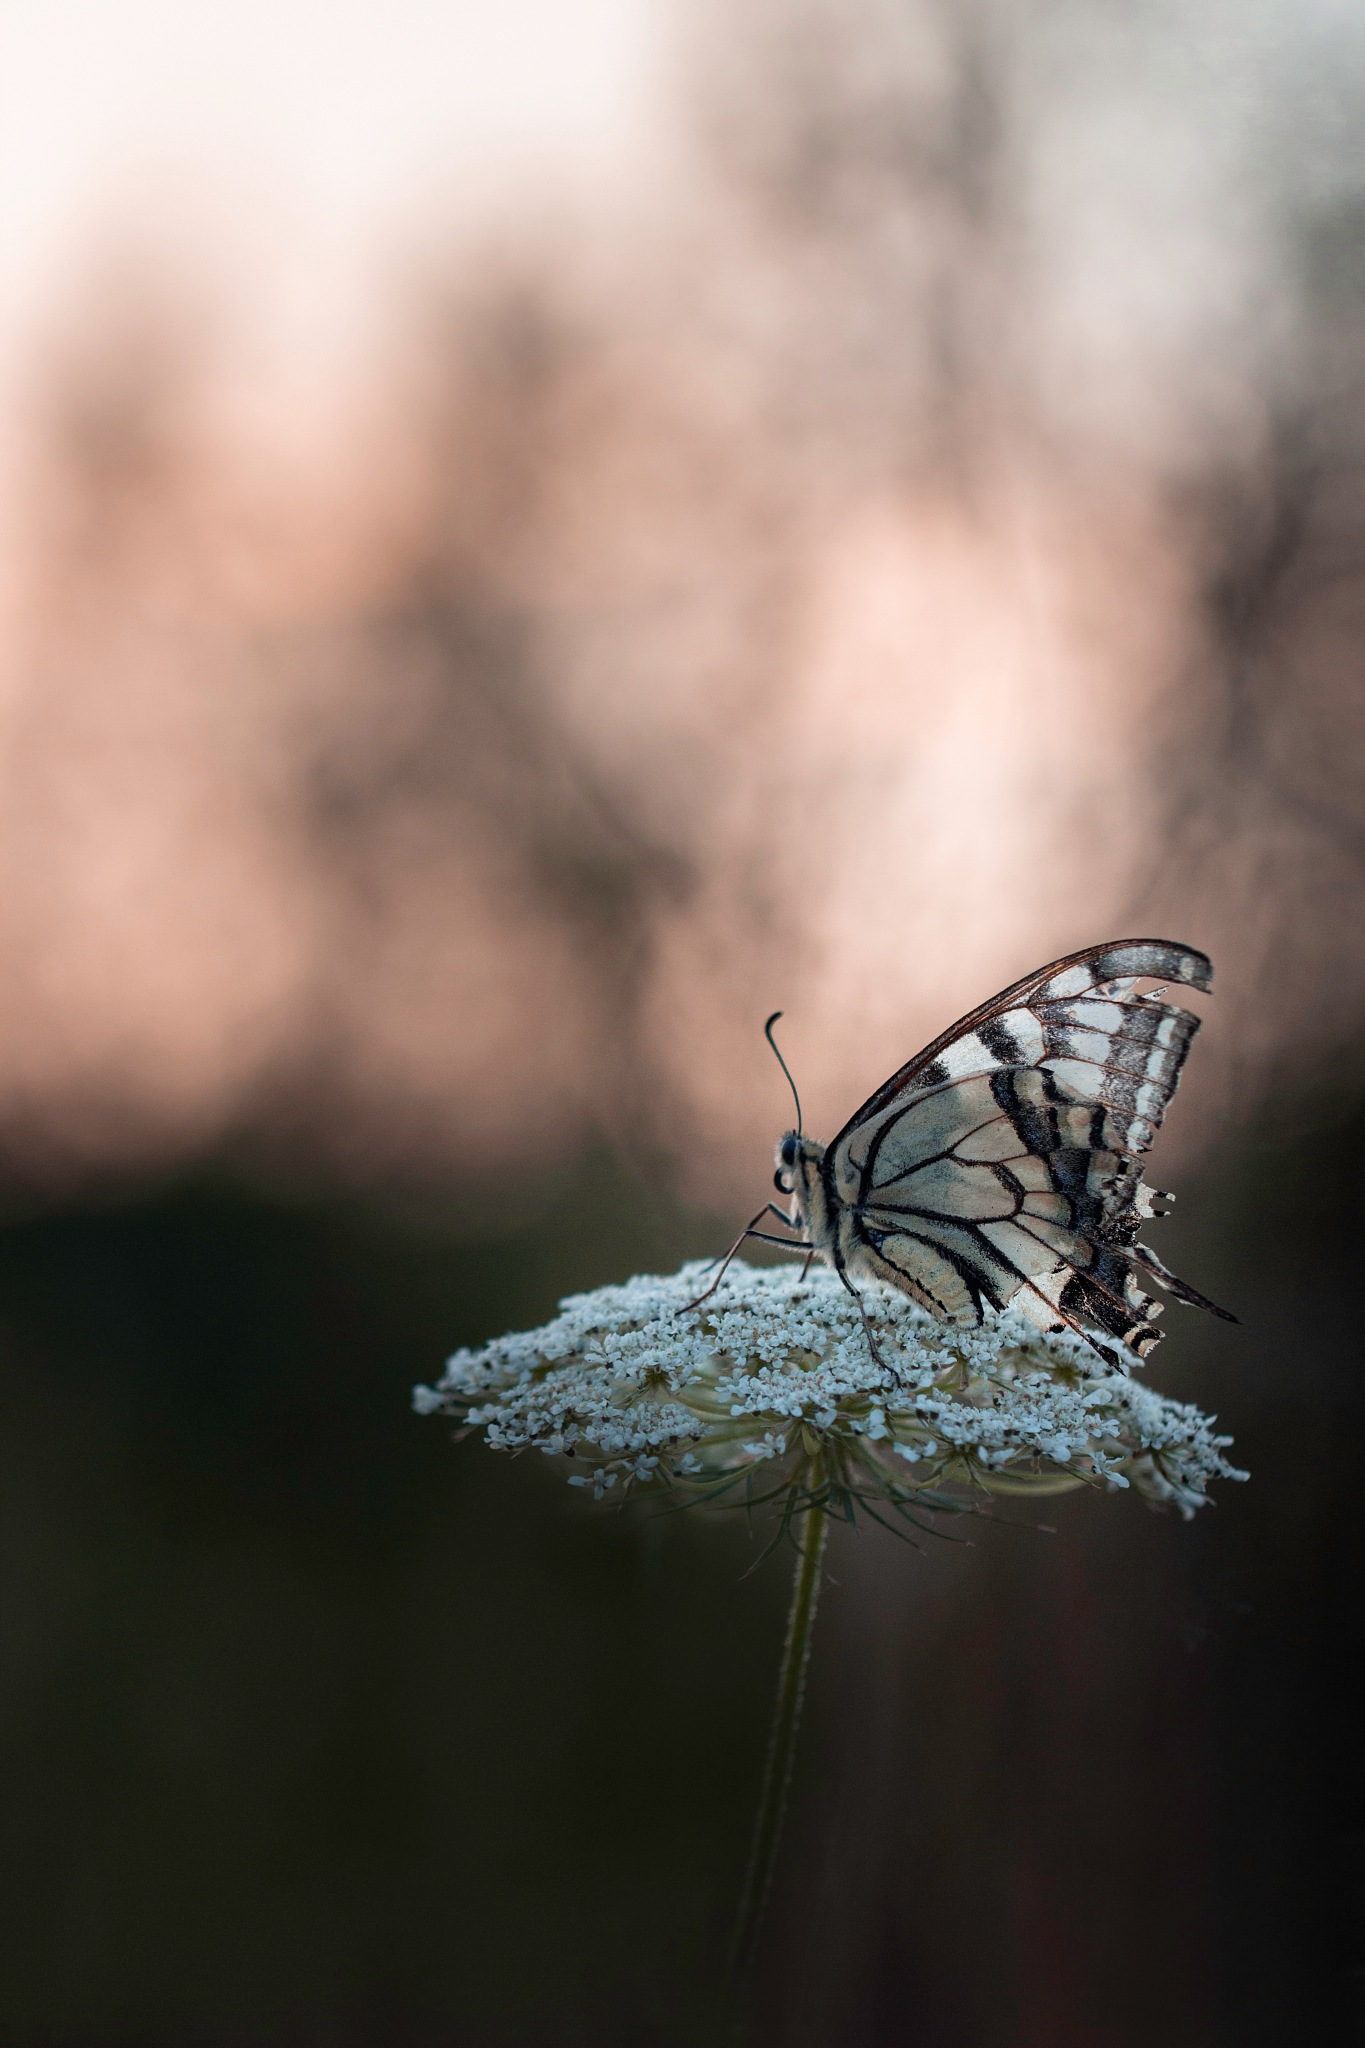 Machaon by Yves Droeven